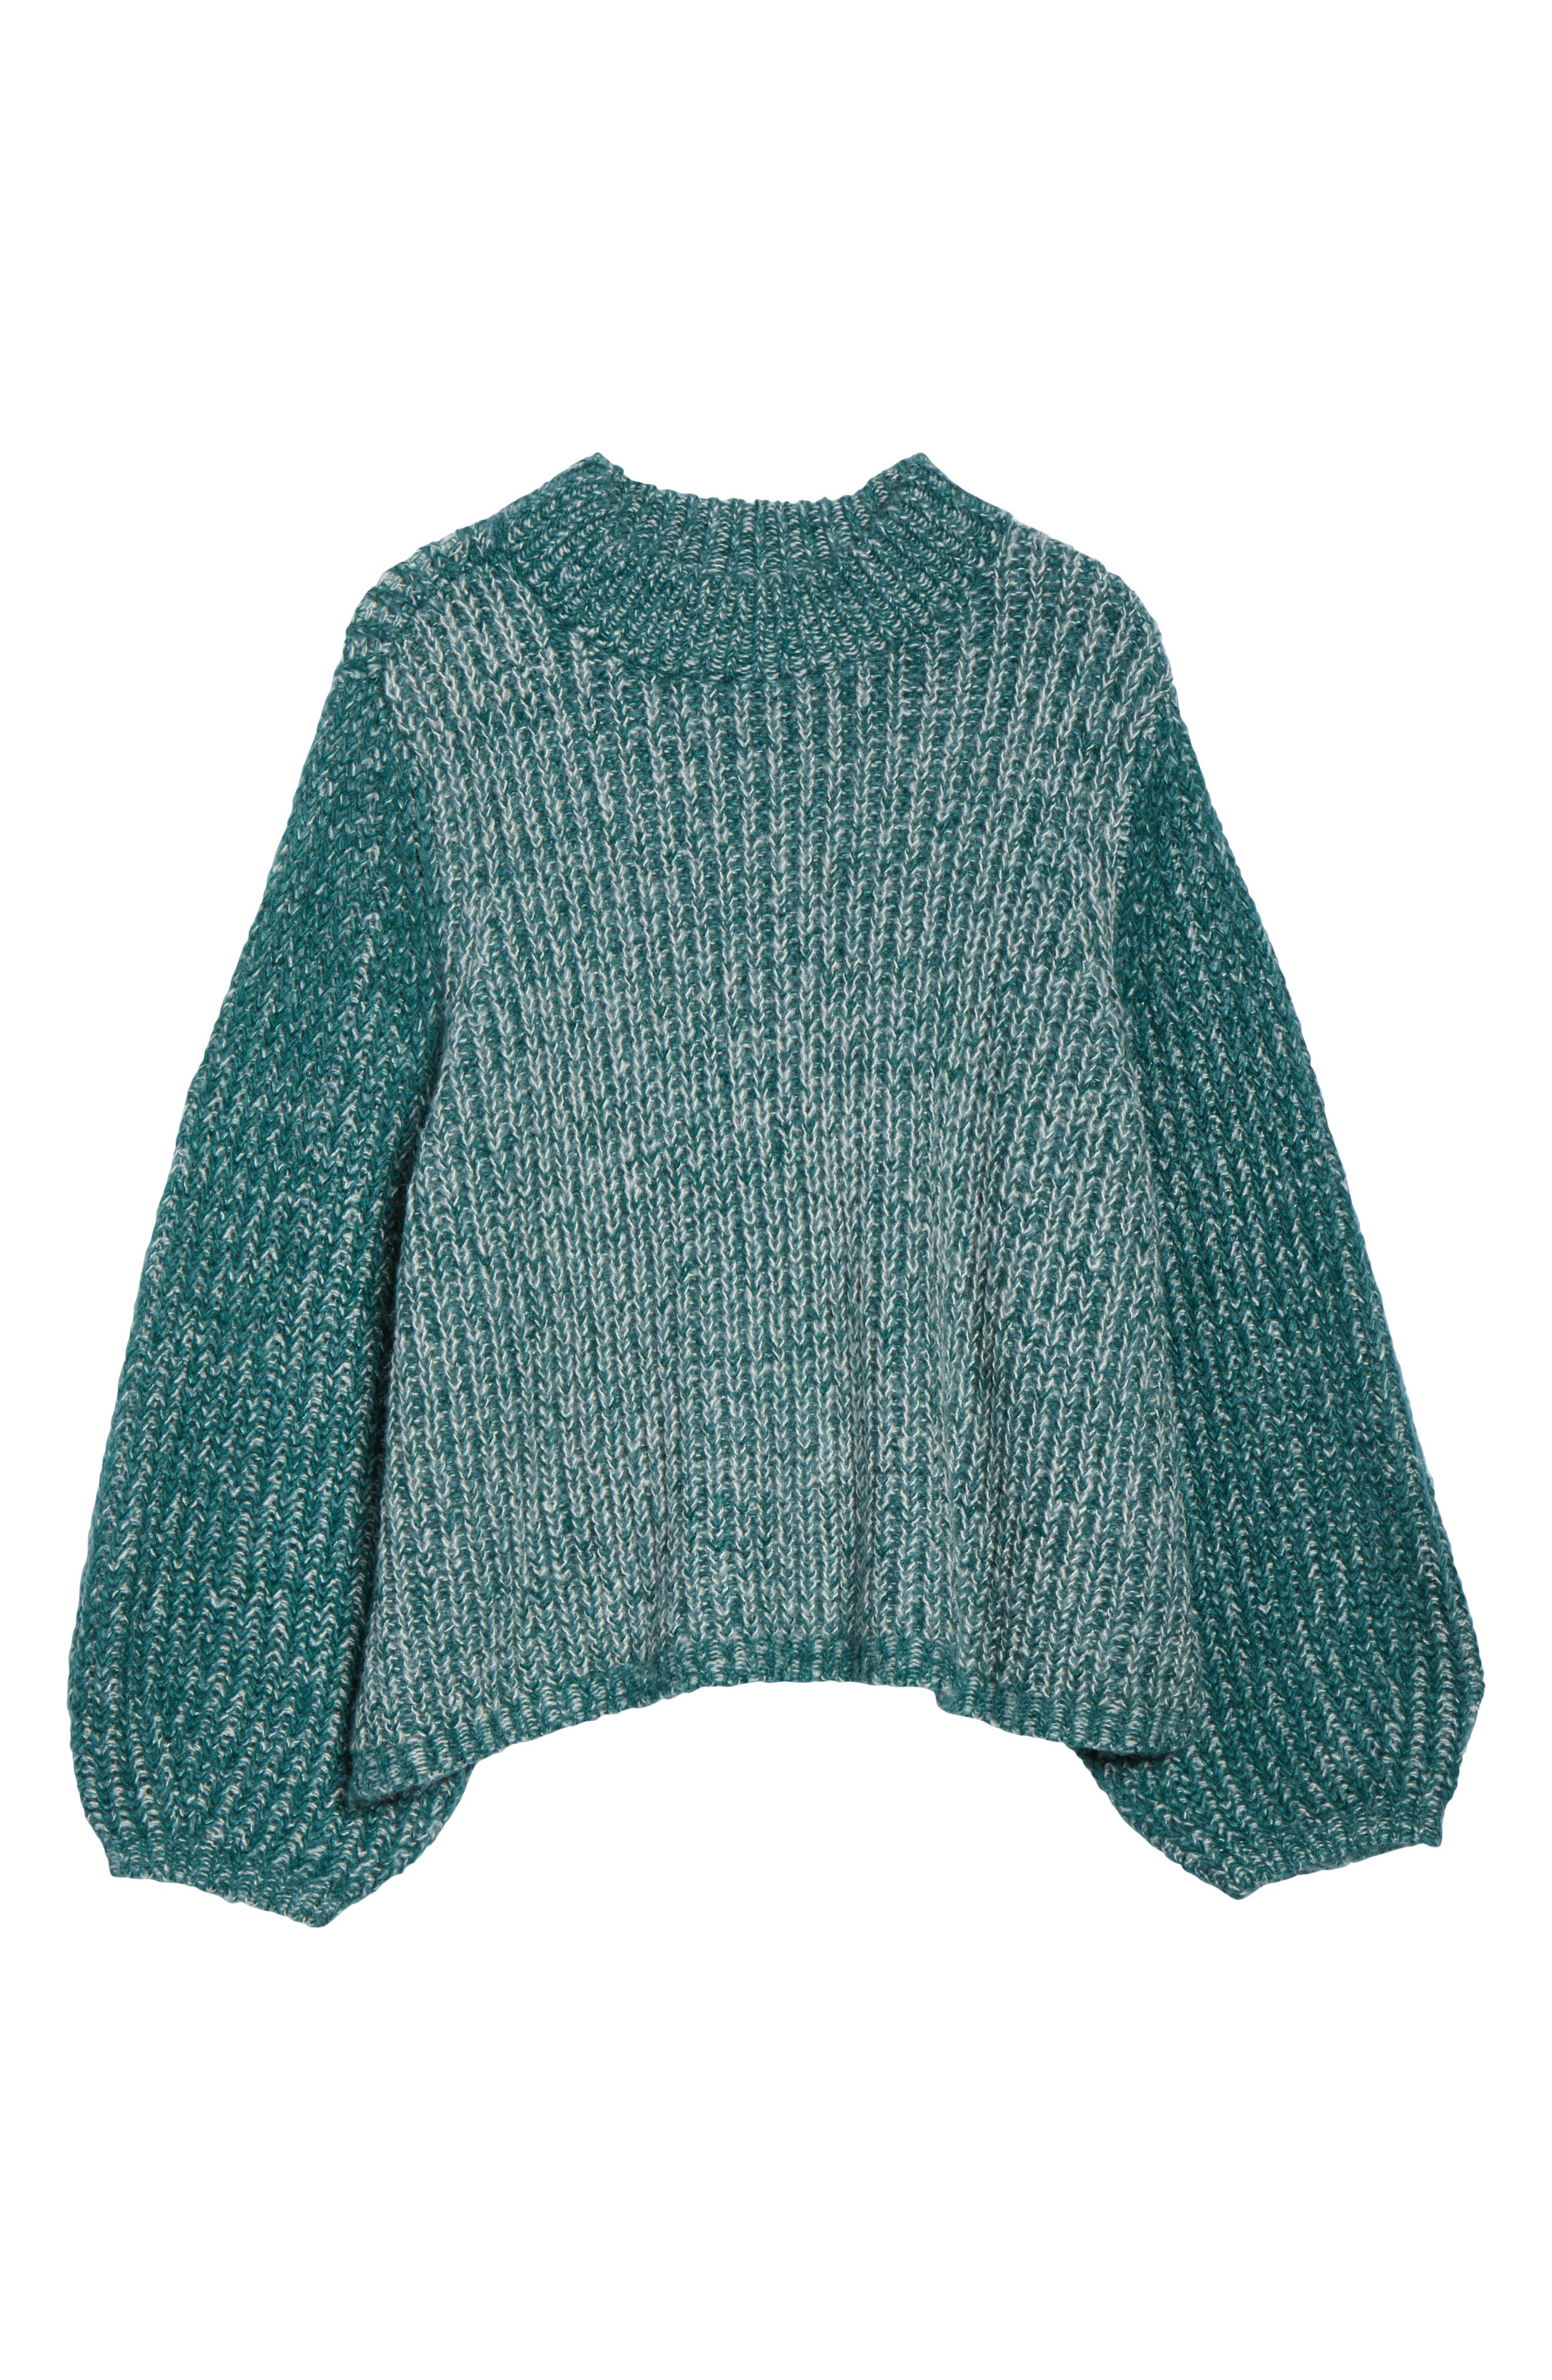 Marl Knit Sweater,                             Alternate thumbnail 6, color,                             TEAL HYDRO